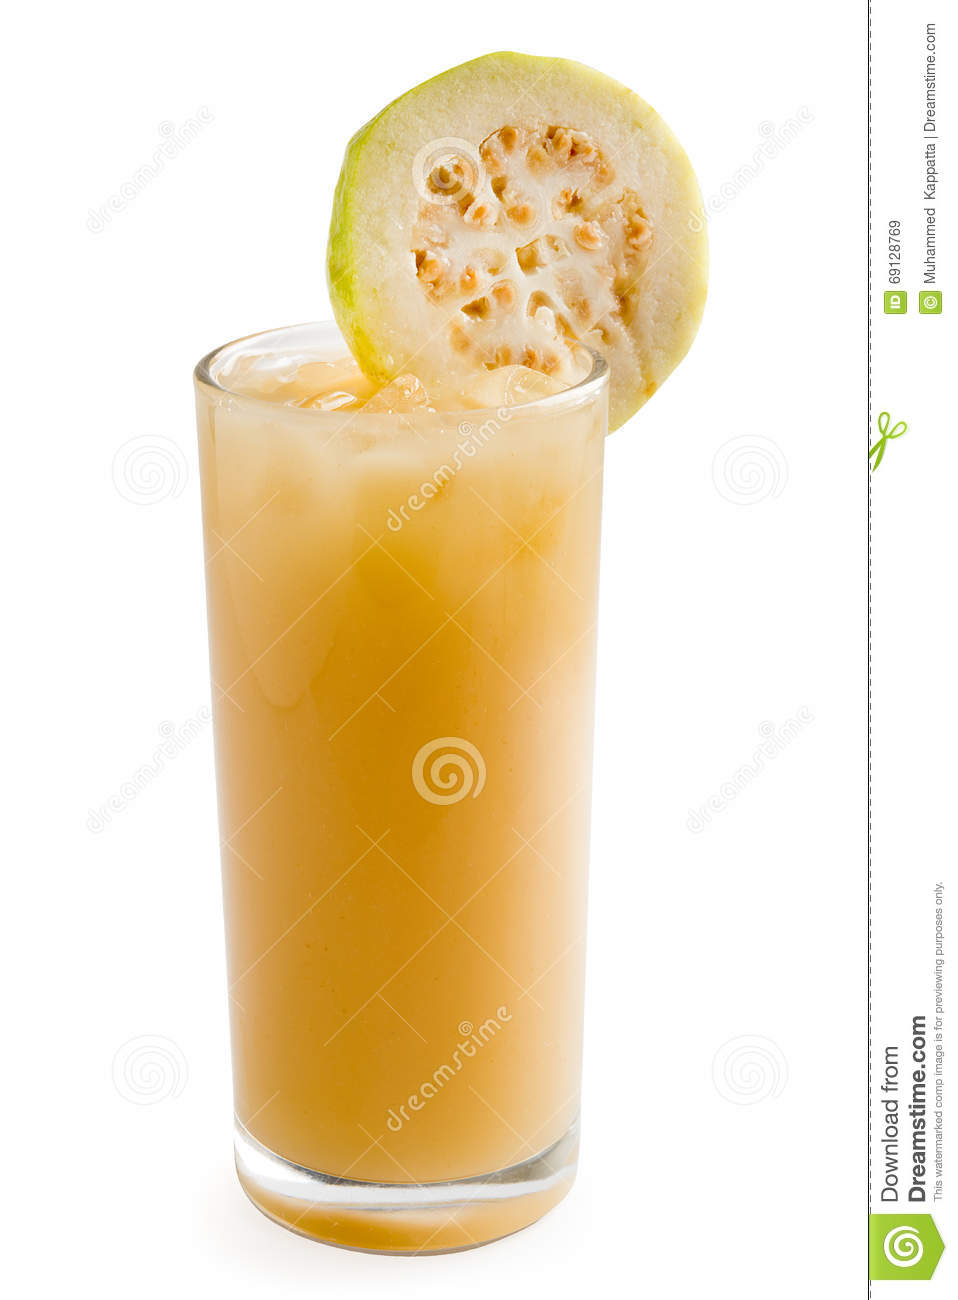 Guava Shake Images